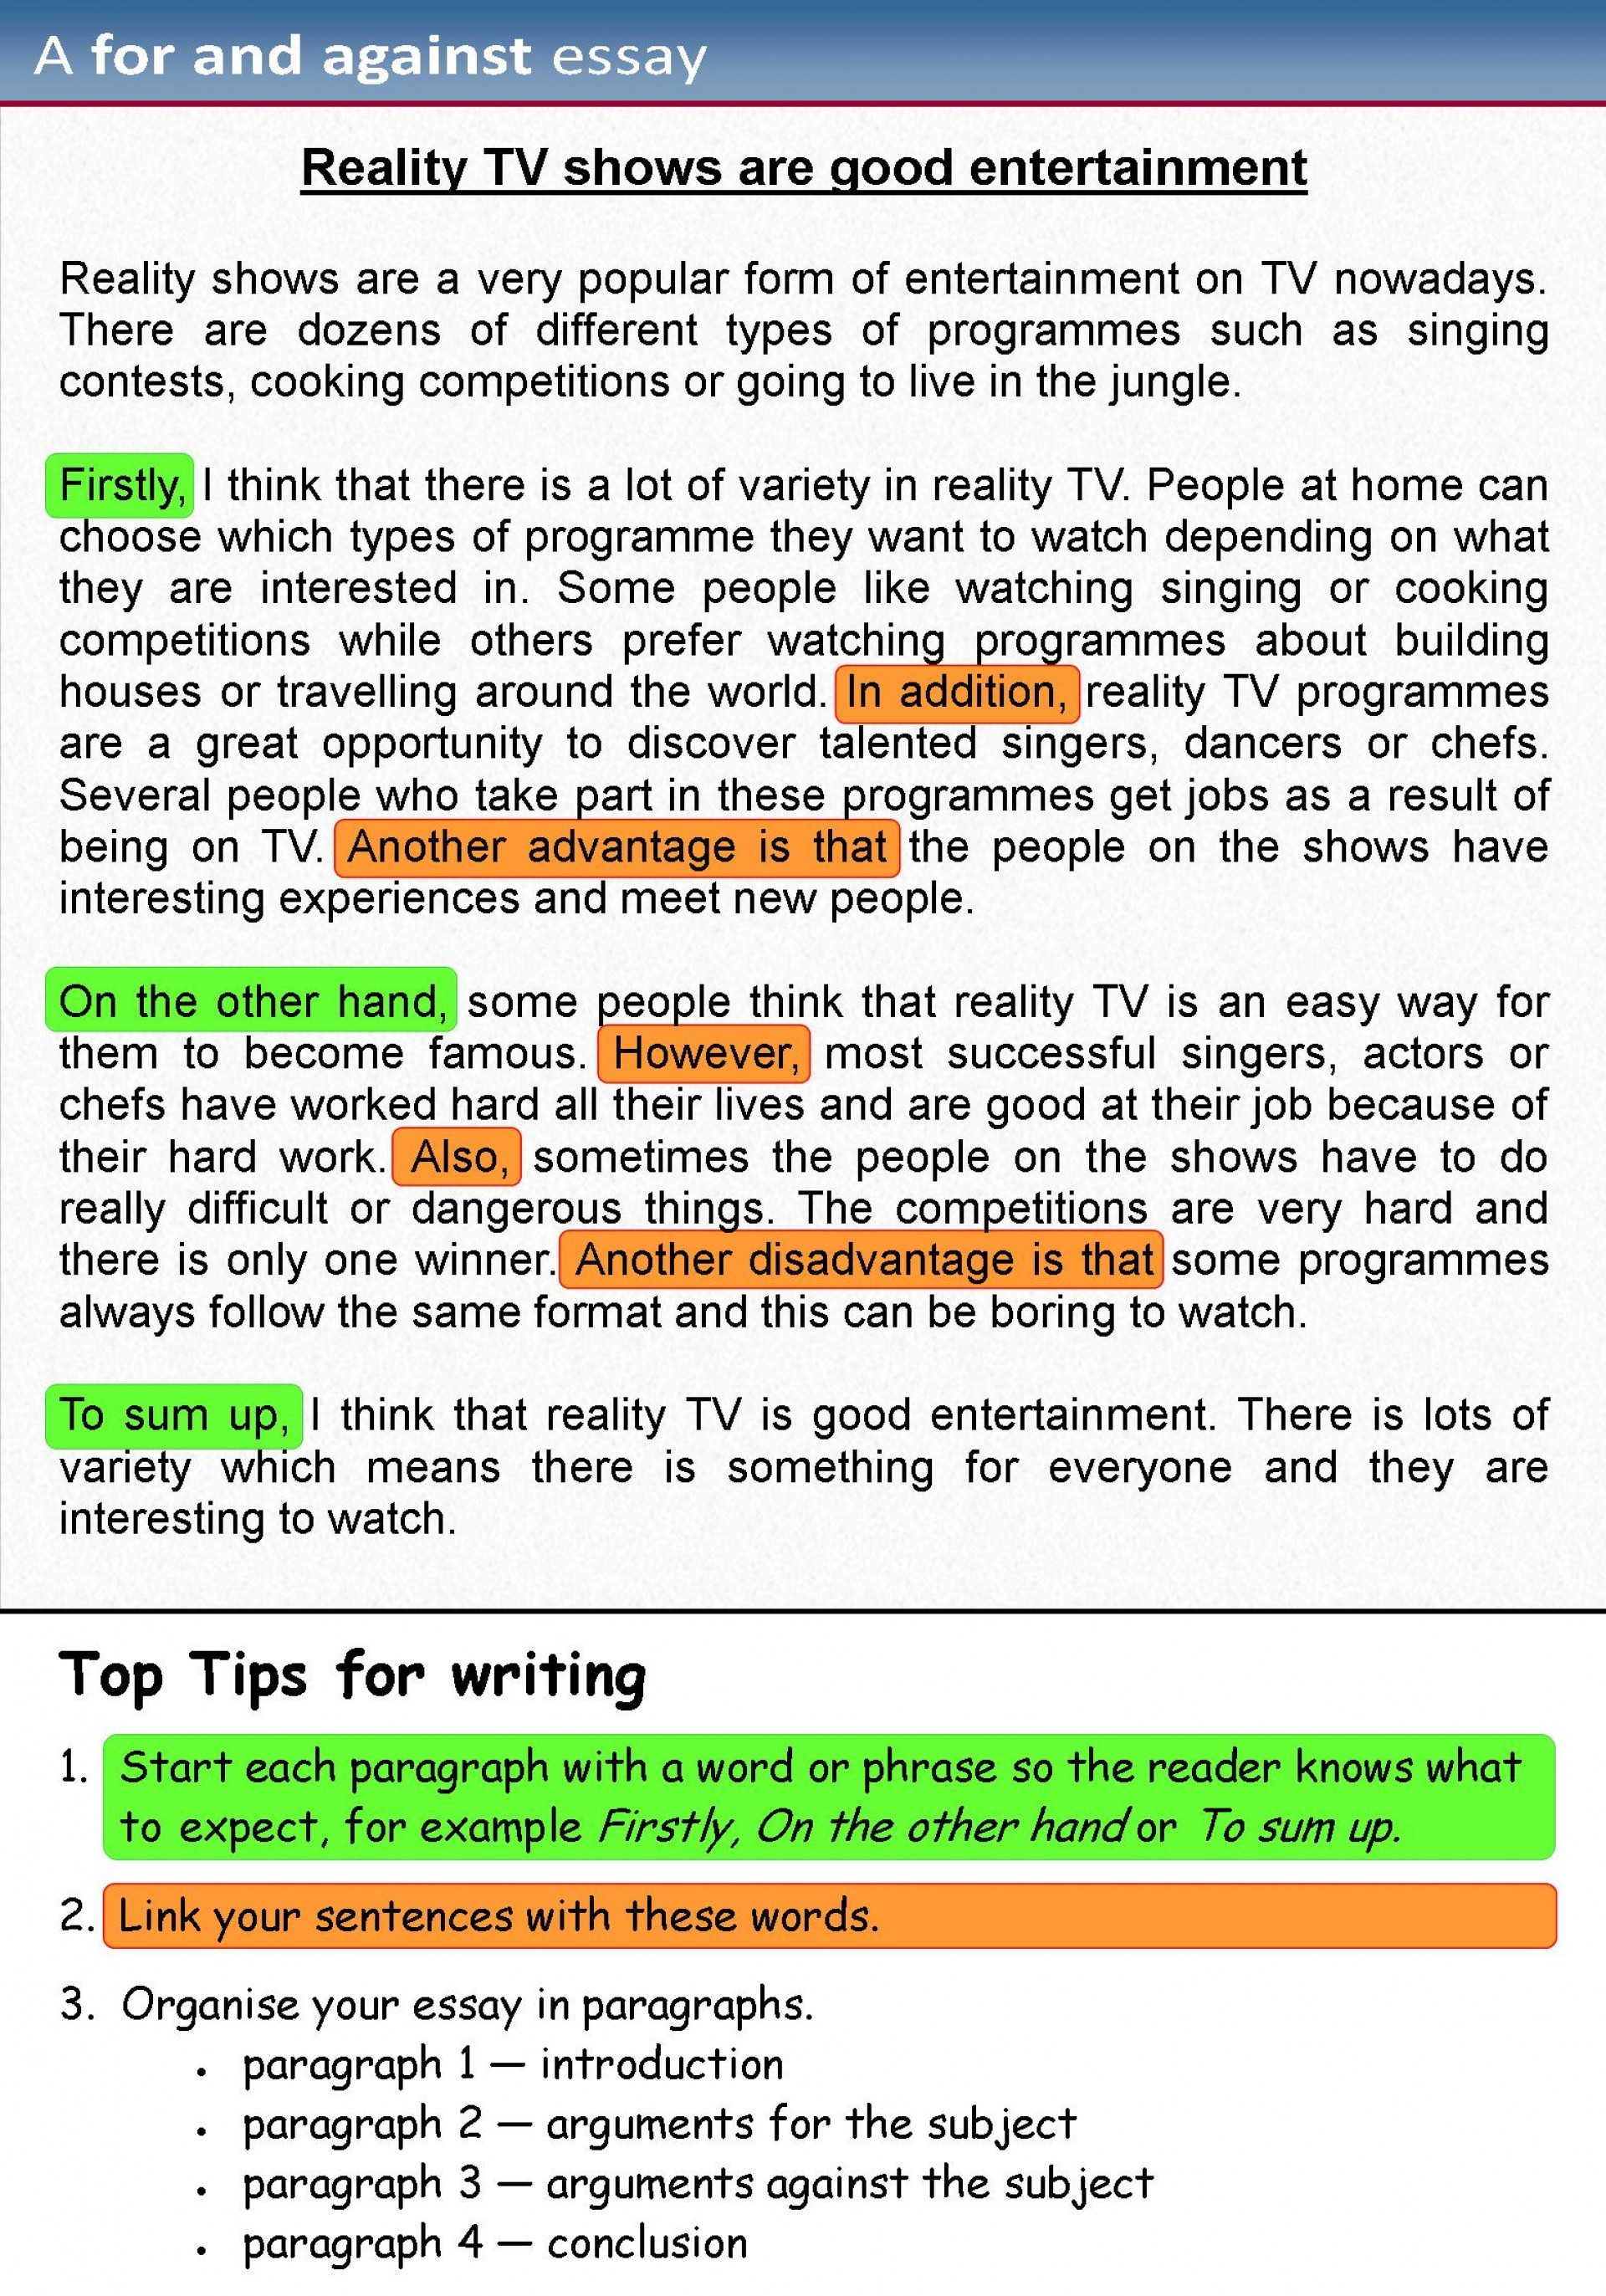 019 Essay Example How To Write And For Against 1 Unique An Outline 6th Grade Conclusion In Mla Format 1920